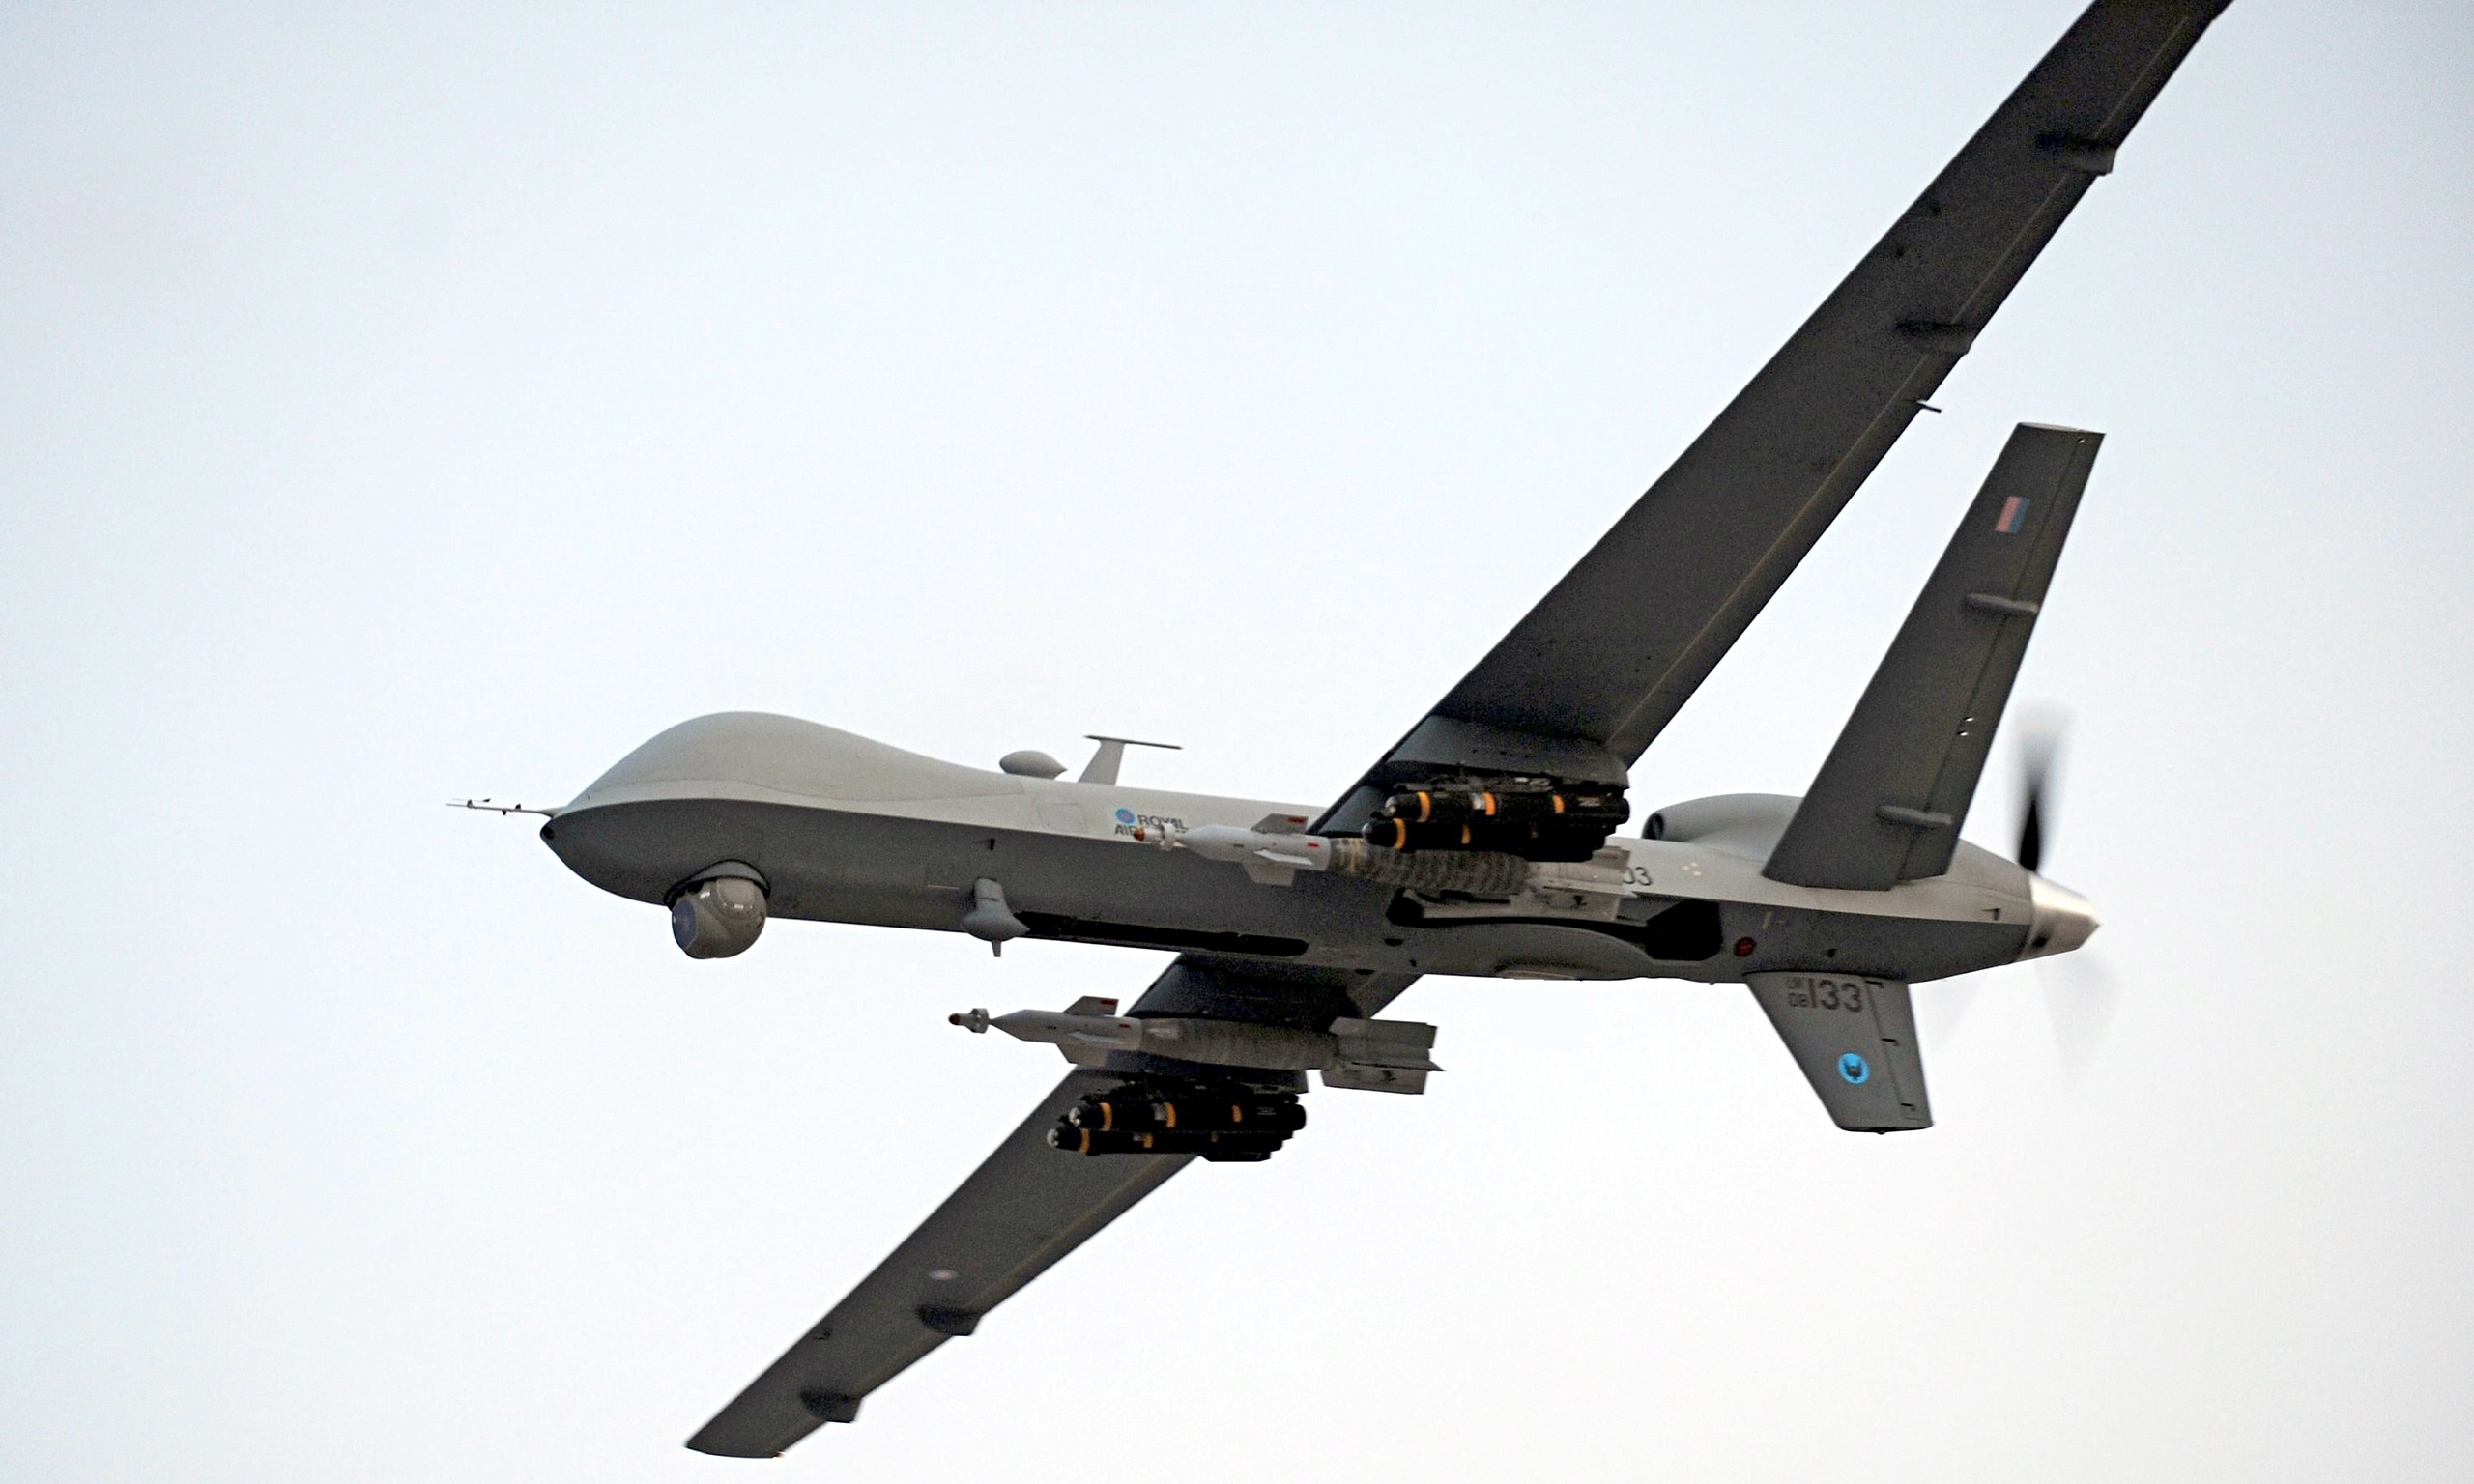 http://static.guim.co.uk/sys-images/Guardian/Pix/pictures/2014/9/21/1411324756888/An-RAF-Reaper-airborne-ov-014.jpg